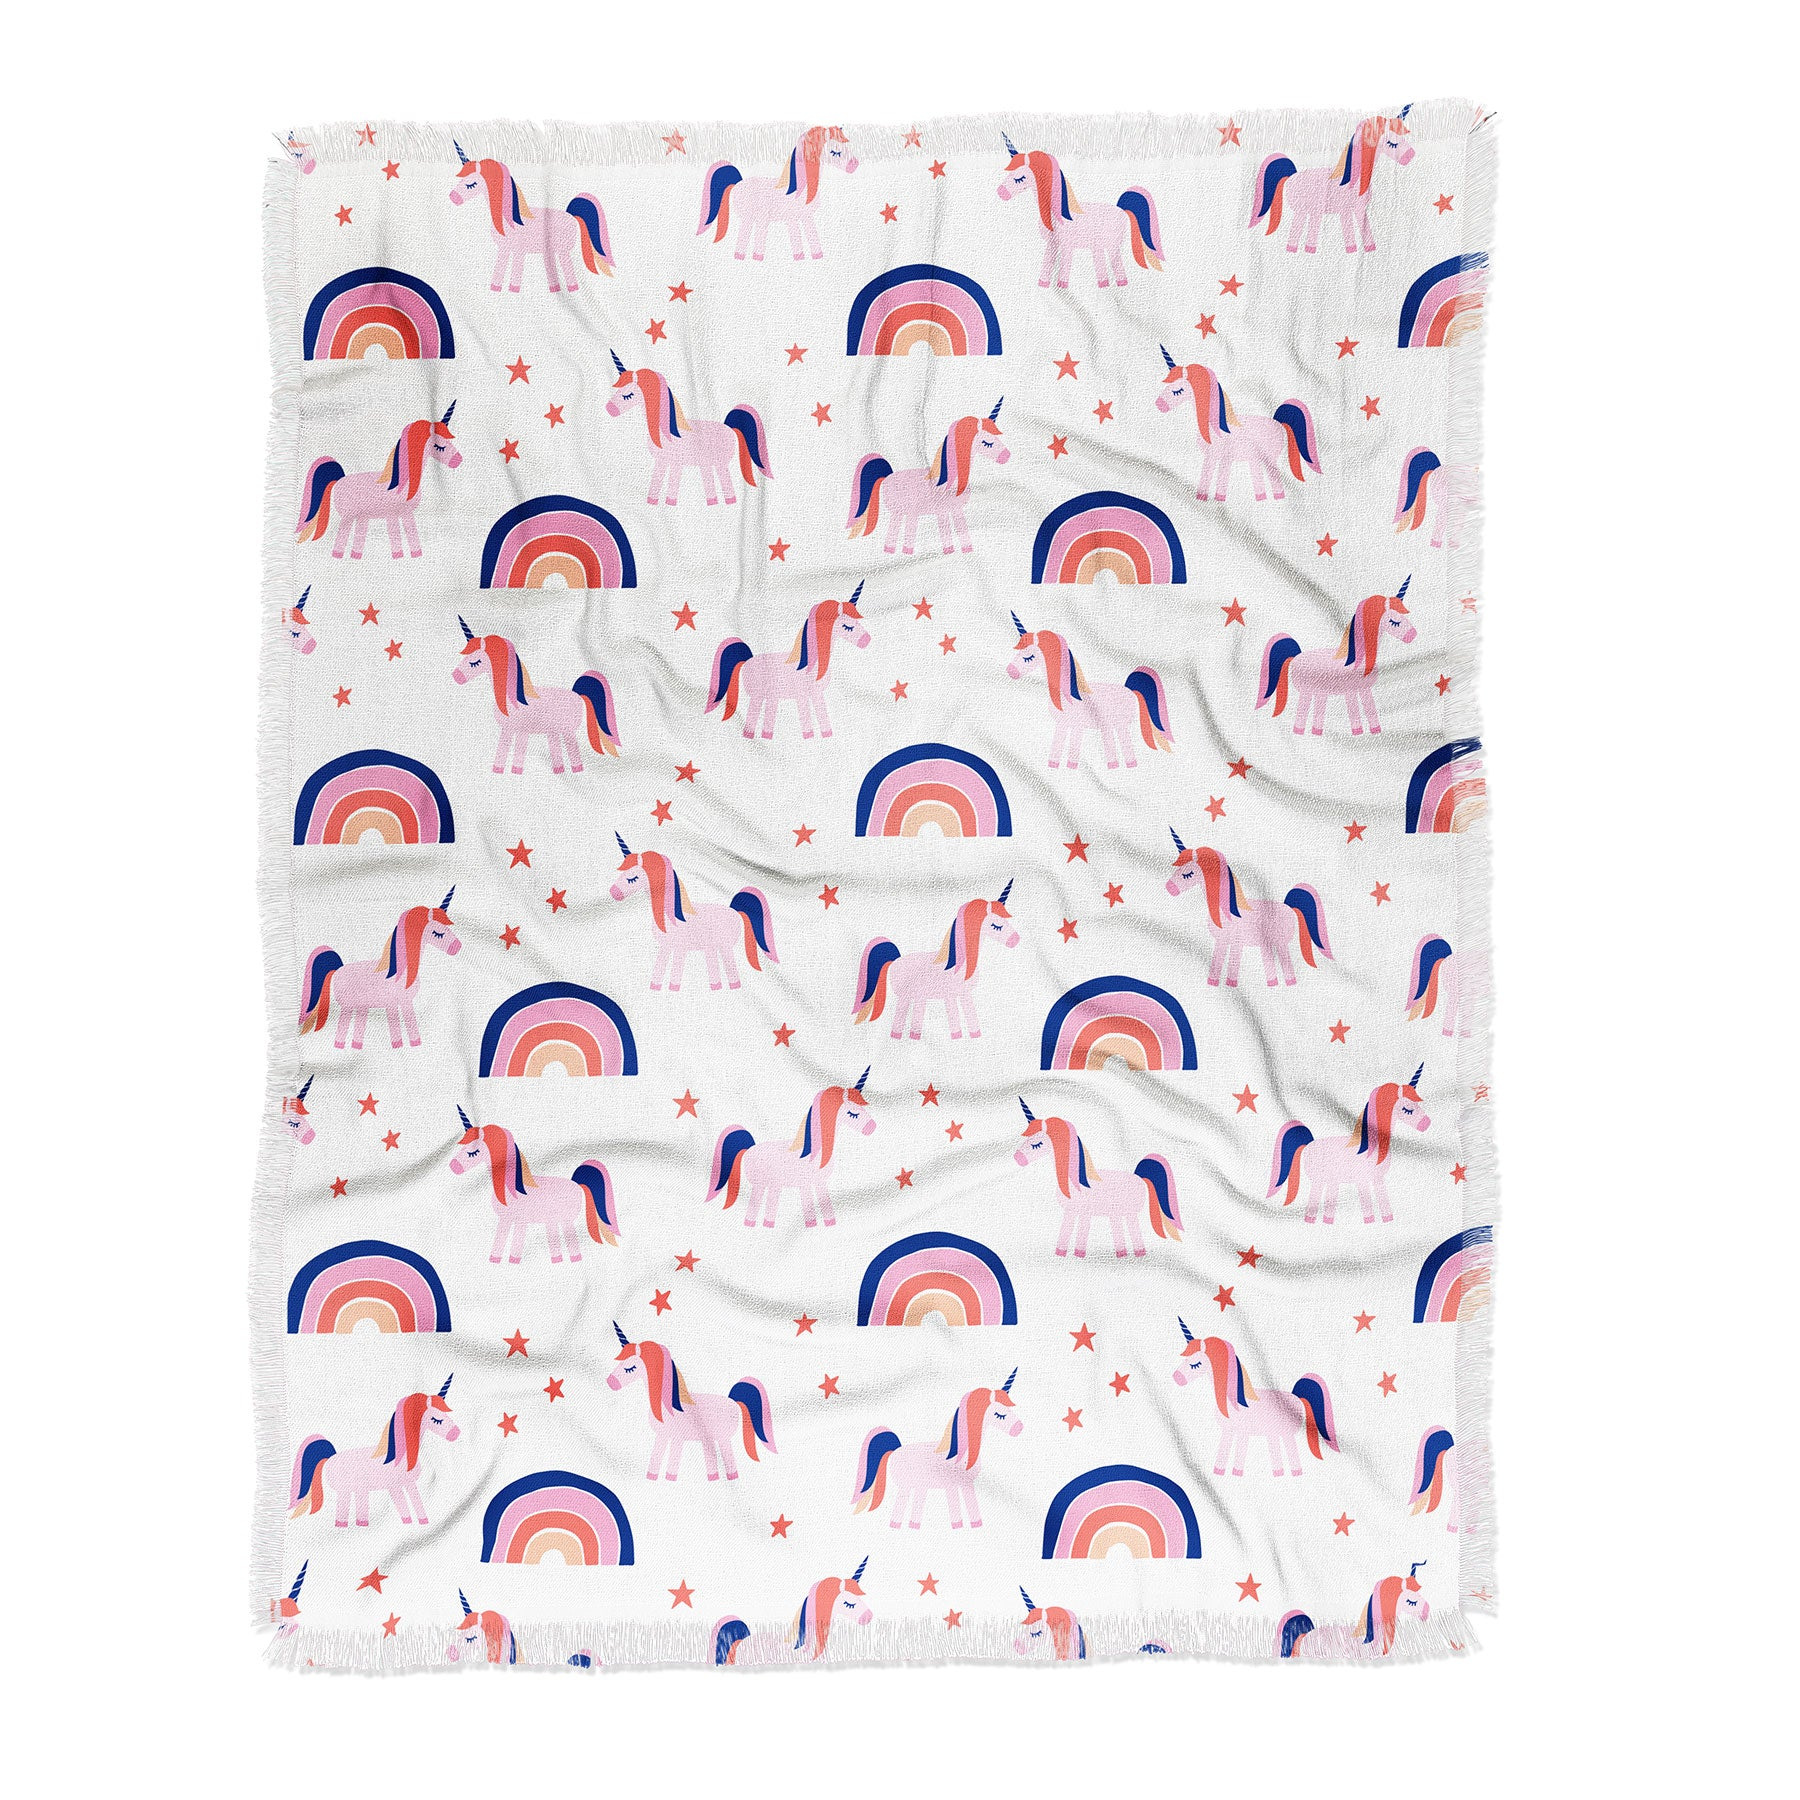 Little Arrow Design Co unicorn dreams in pink and blue Throw Blanket